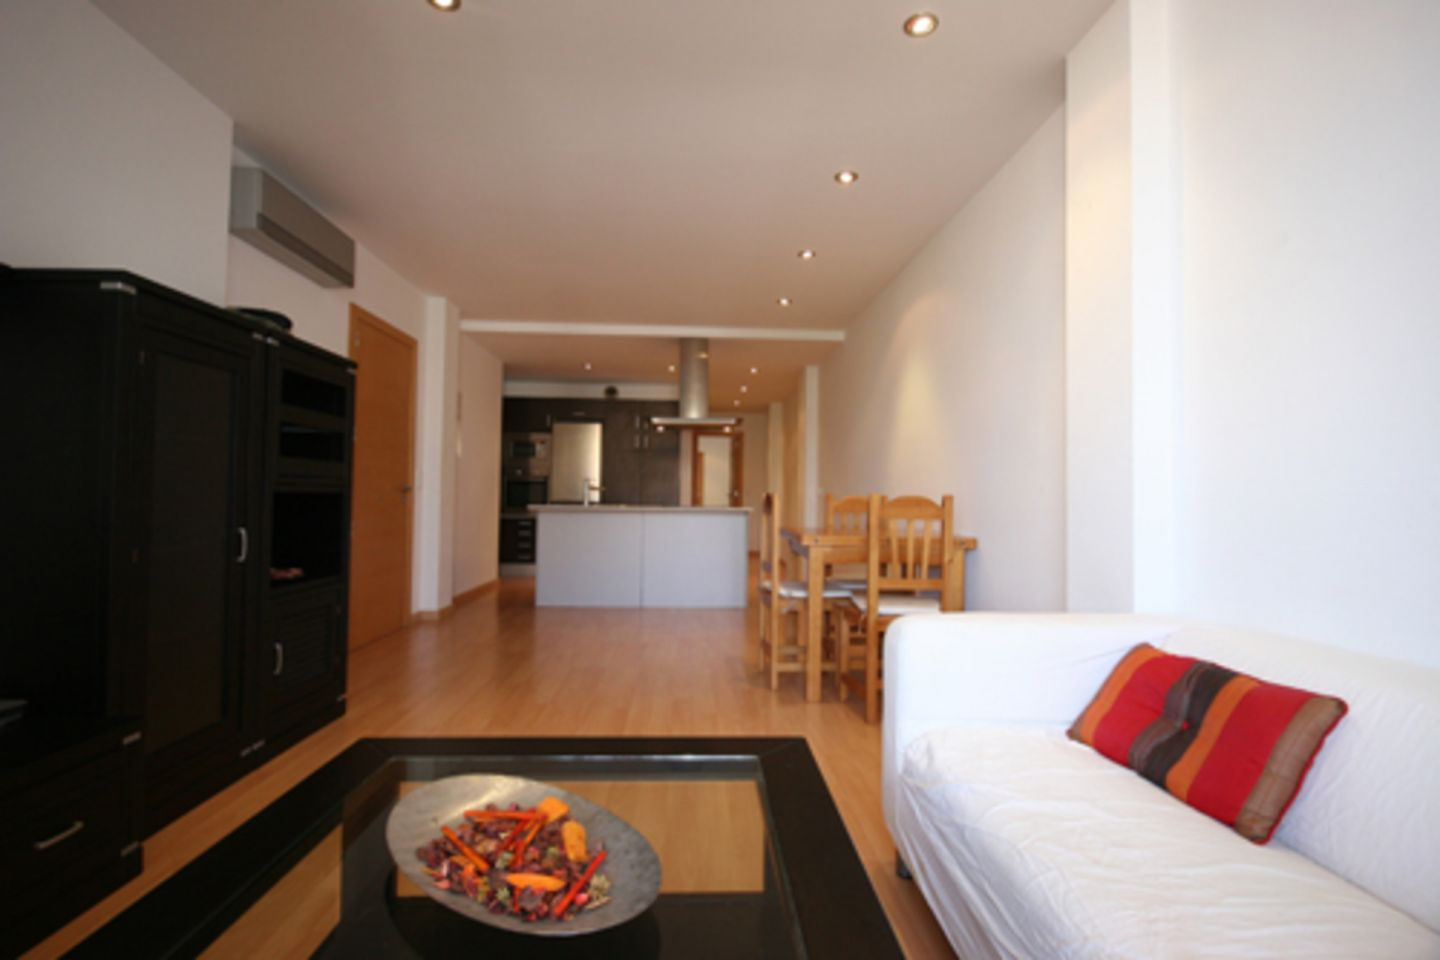 2 Bed Apartment for sale in PUERTO POLLENSA 4